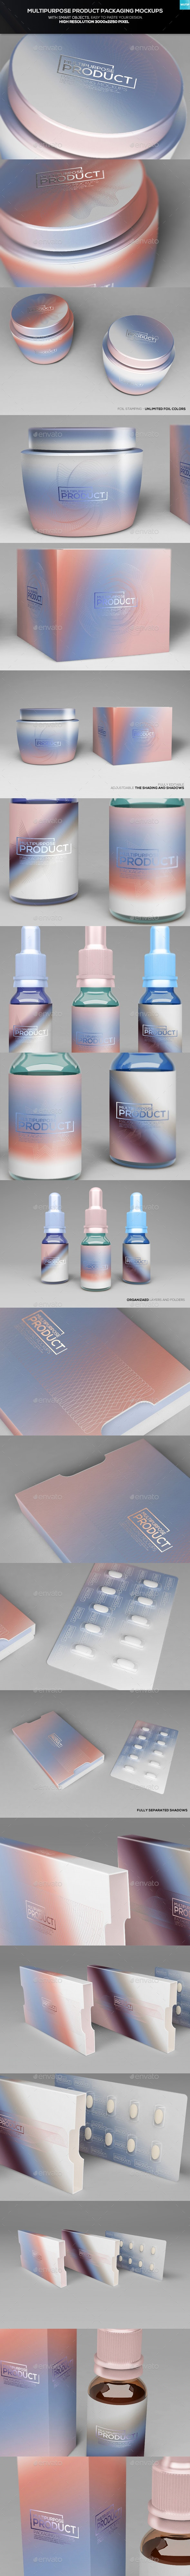 Multipurpose Product Packaging Mockups - Miscellaneous Packaging